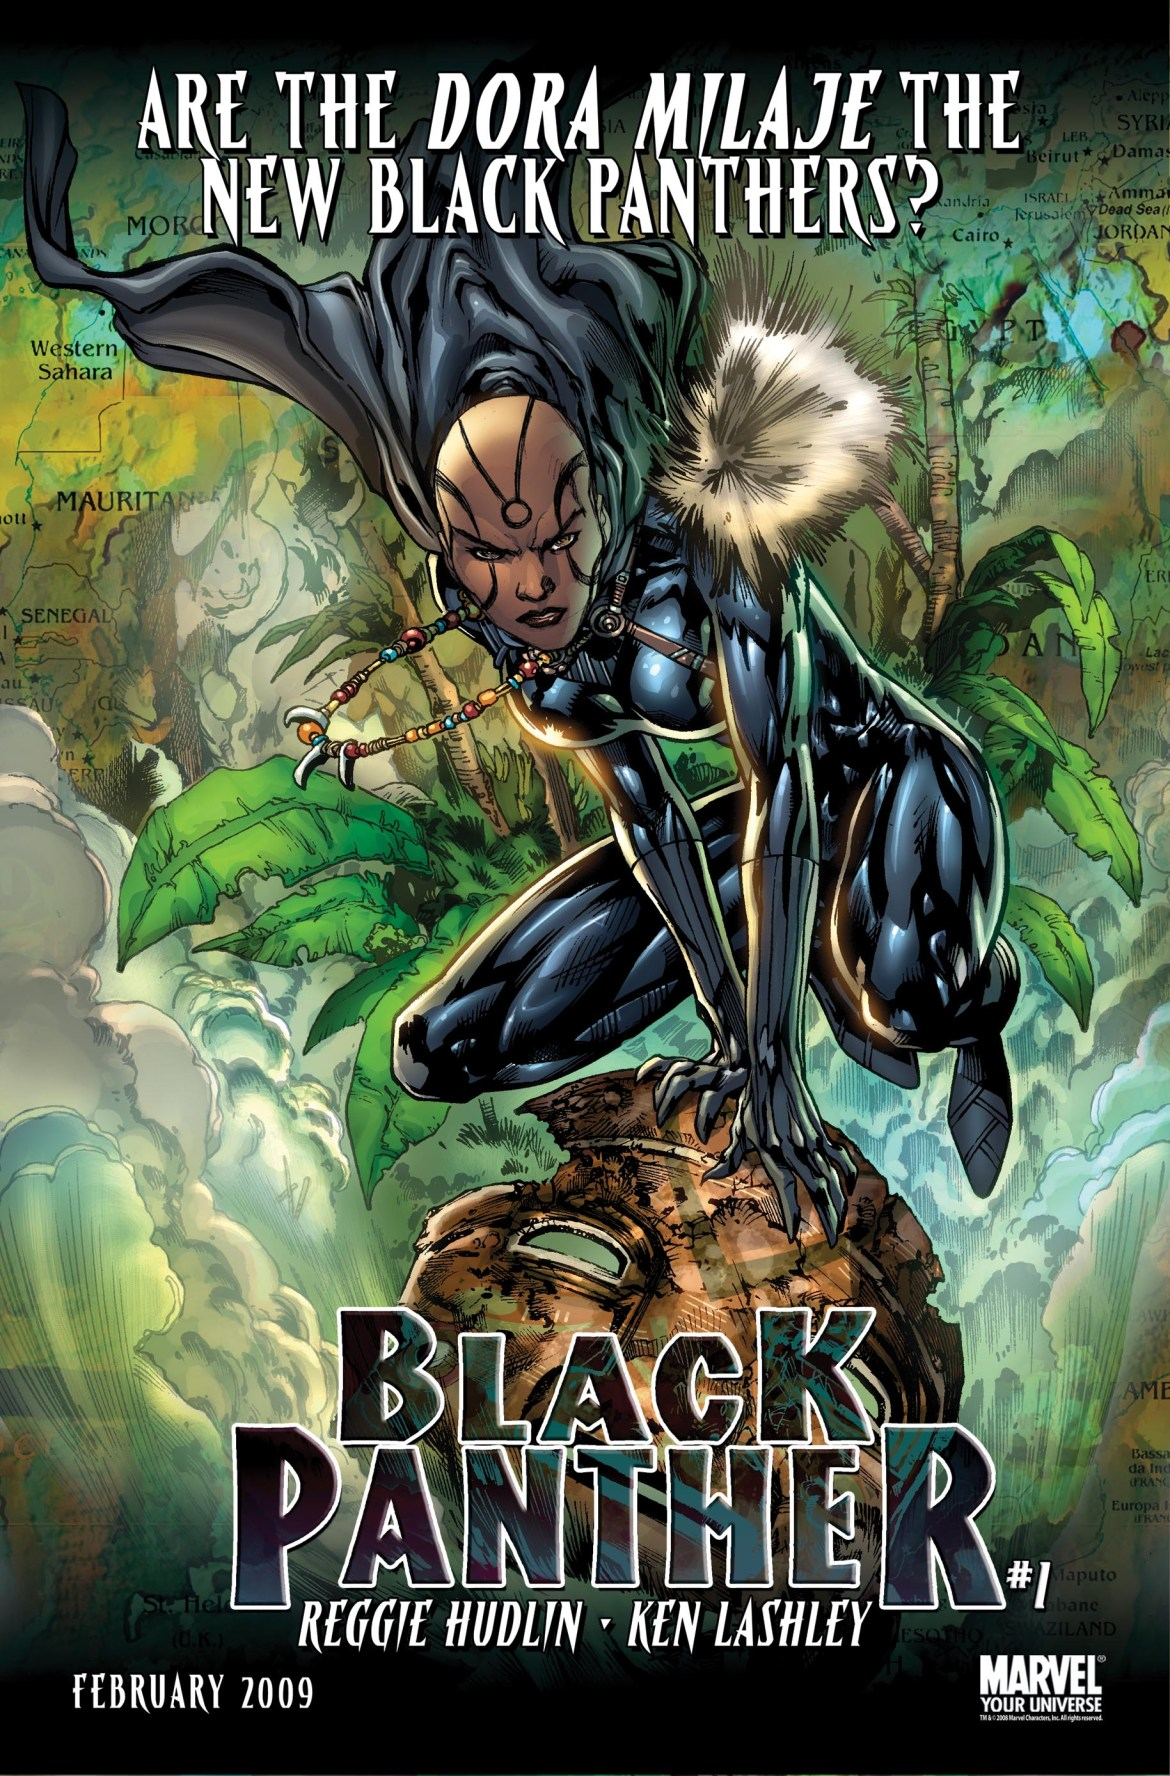 IsSheBlackPanther2 Are The Dora Milaje The New Black Panthers?